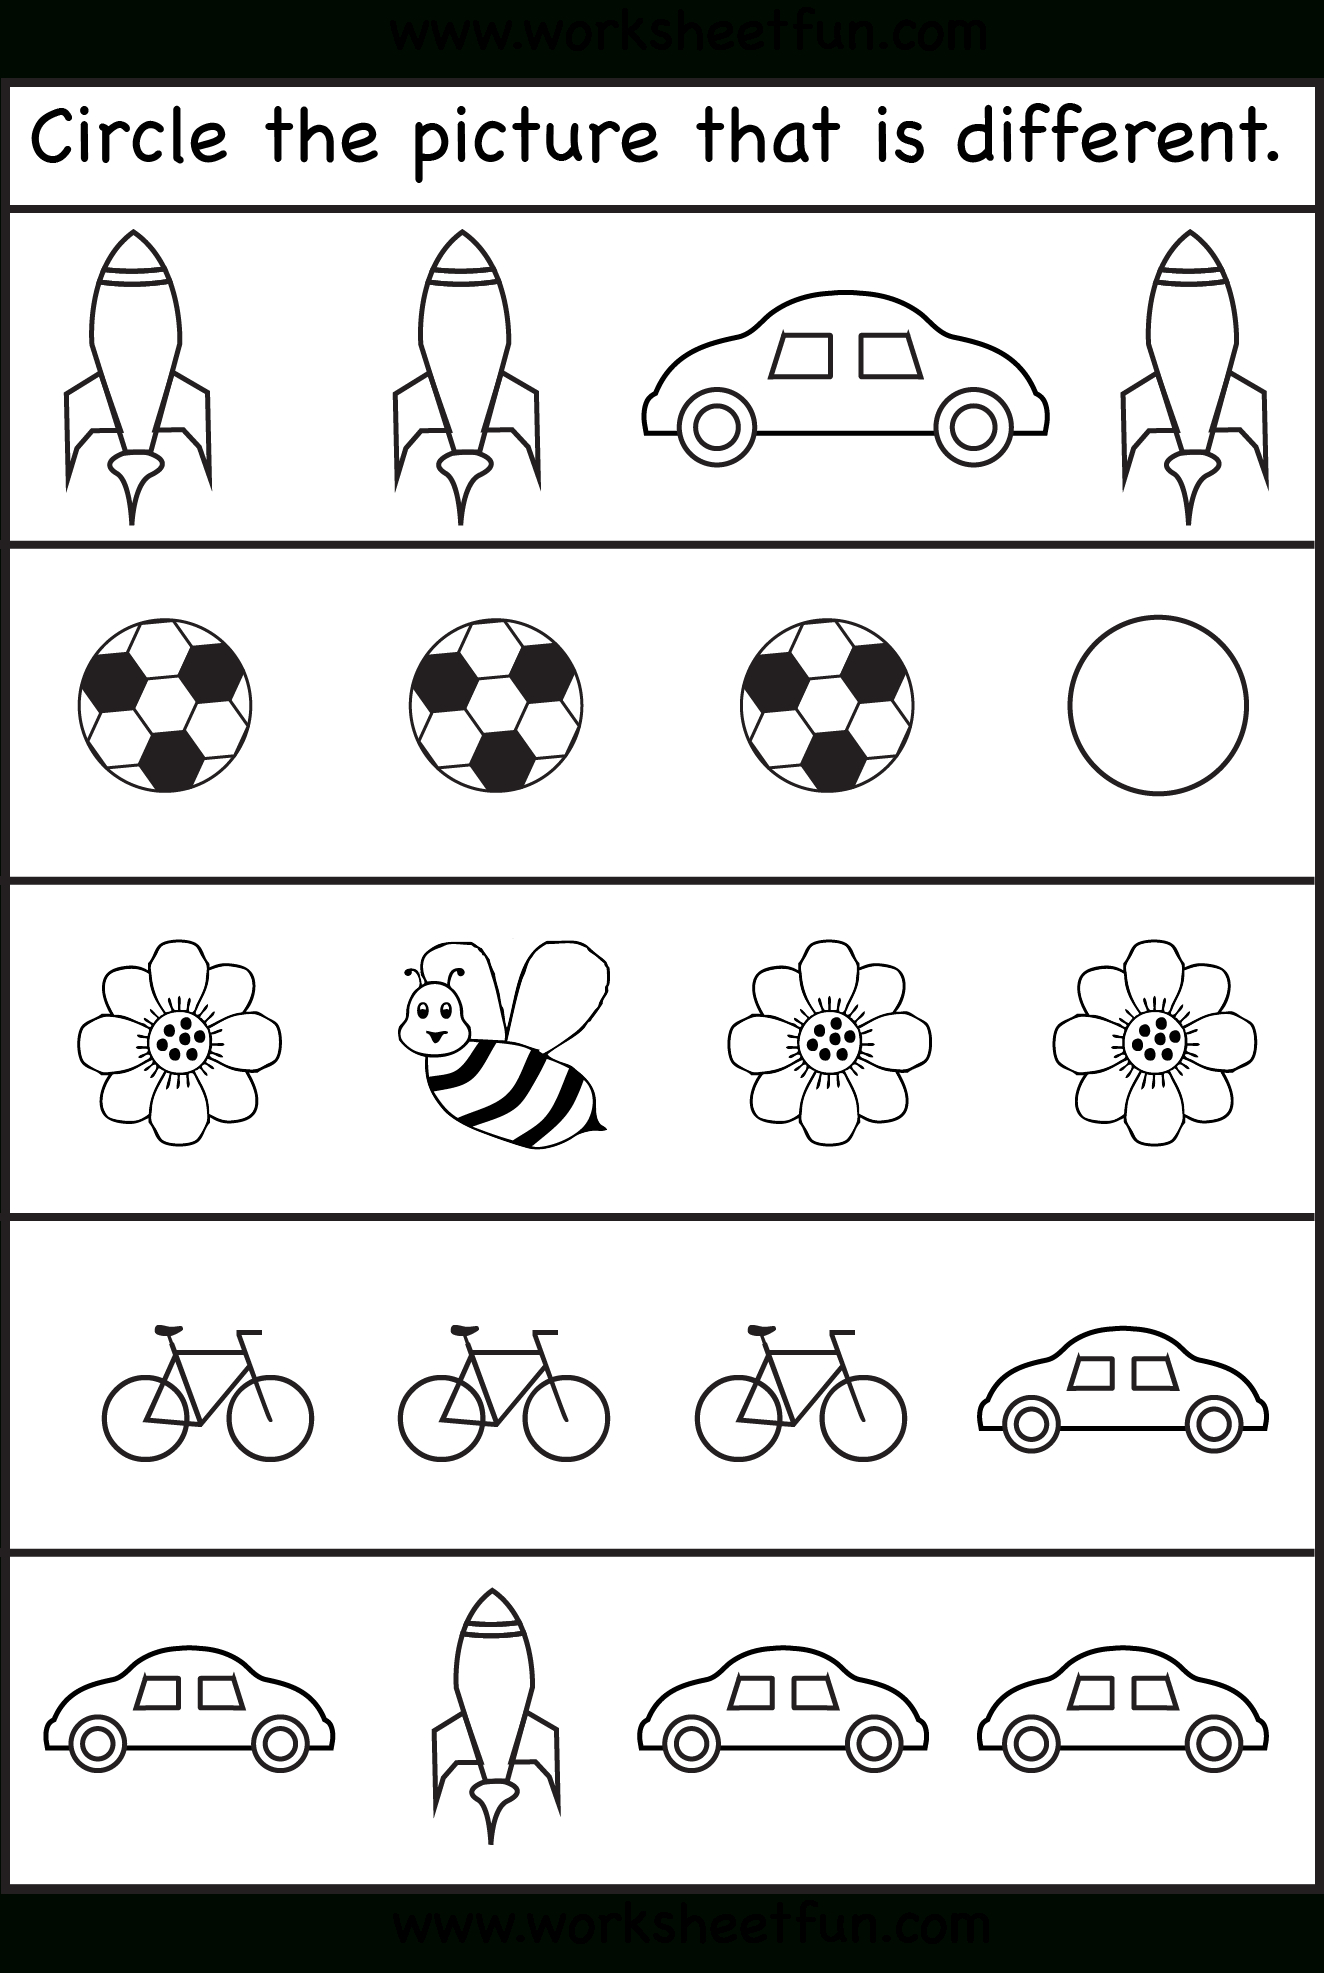 Circle The Picture That Is Different - 4 Worksheets | Preschool Work - Free Printable Early Childhood Activities